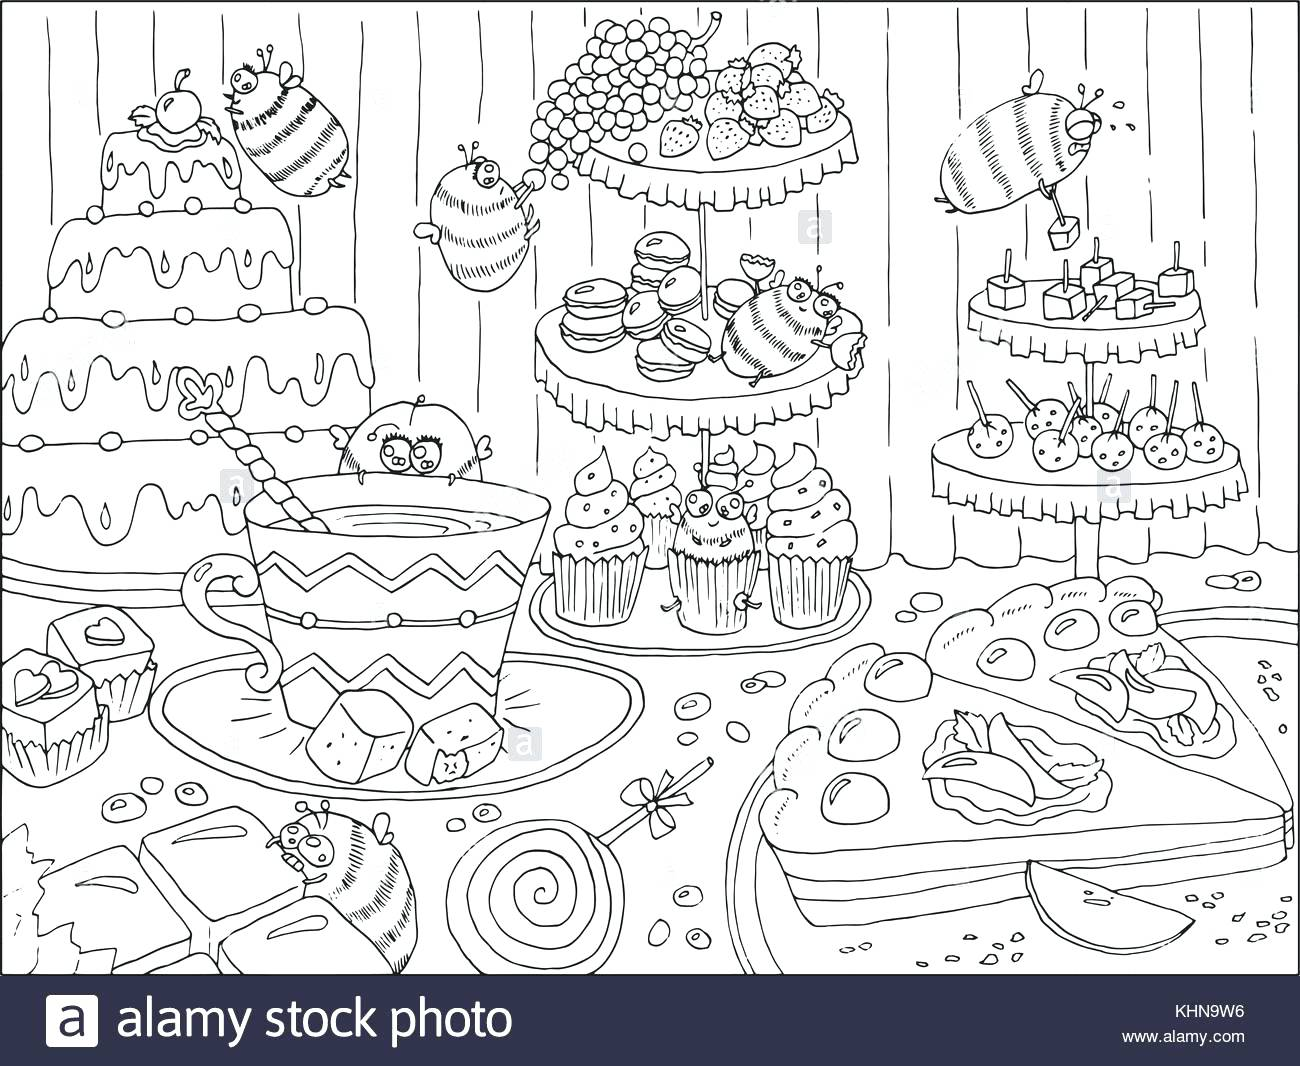 1300x1066 Yummy Banana Bunch Coloring Pages Online Christmas Free Images